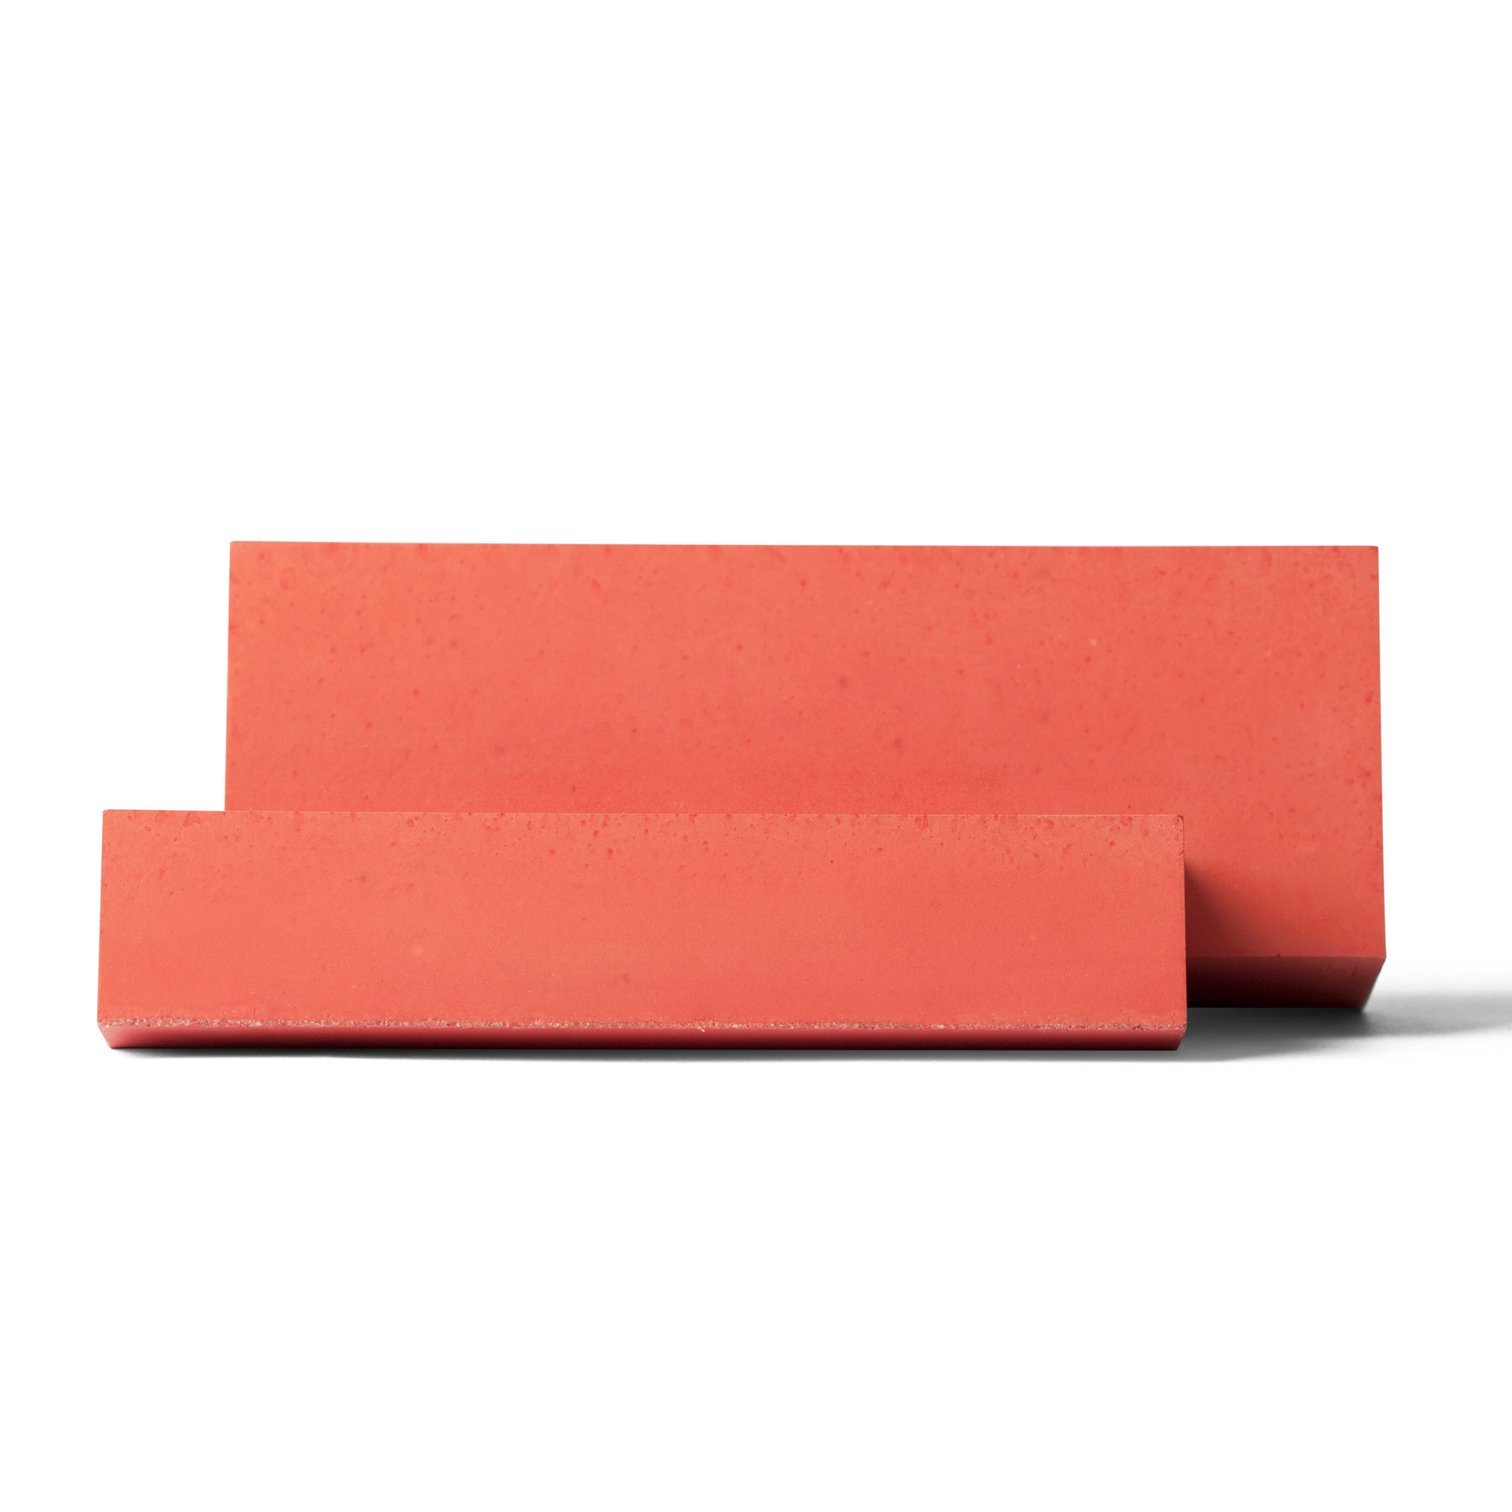 22 Studio Карточница Merge Cardholder Red